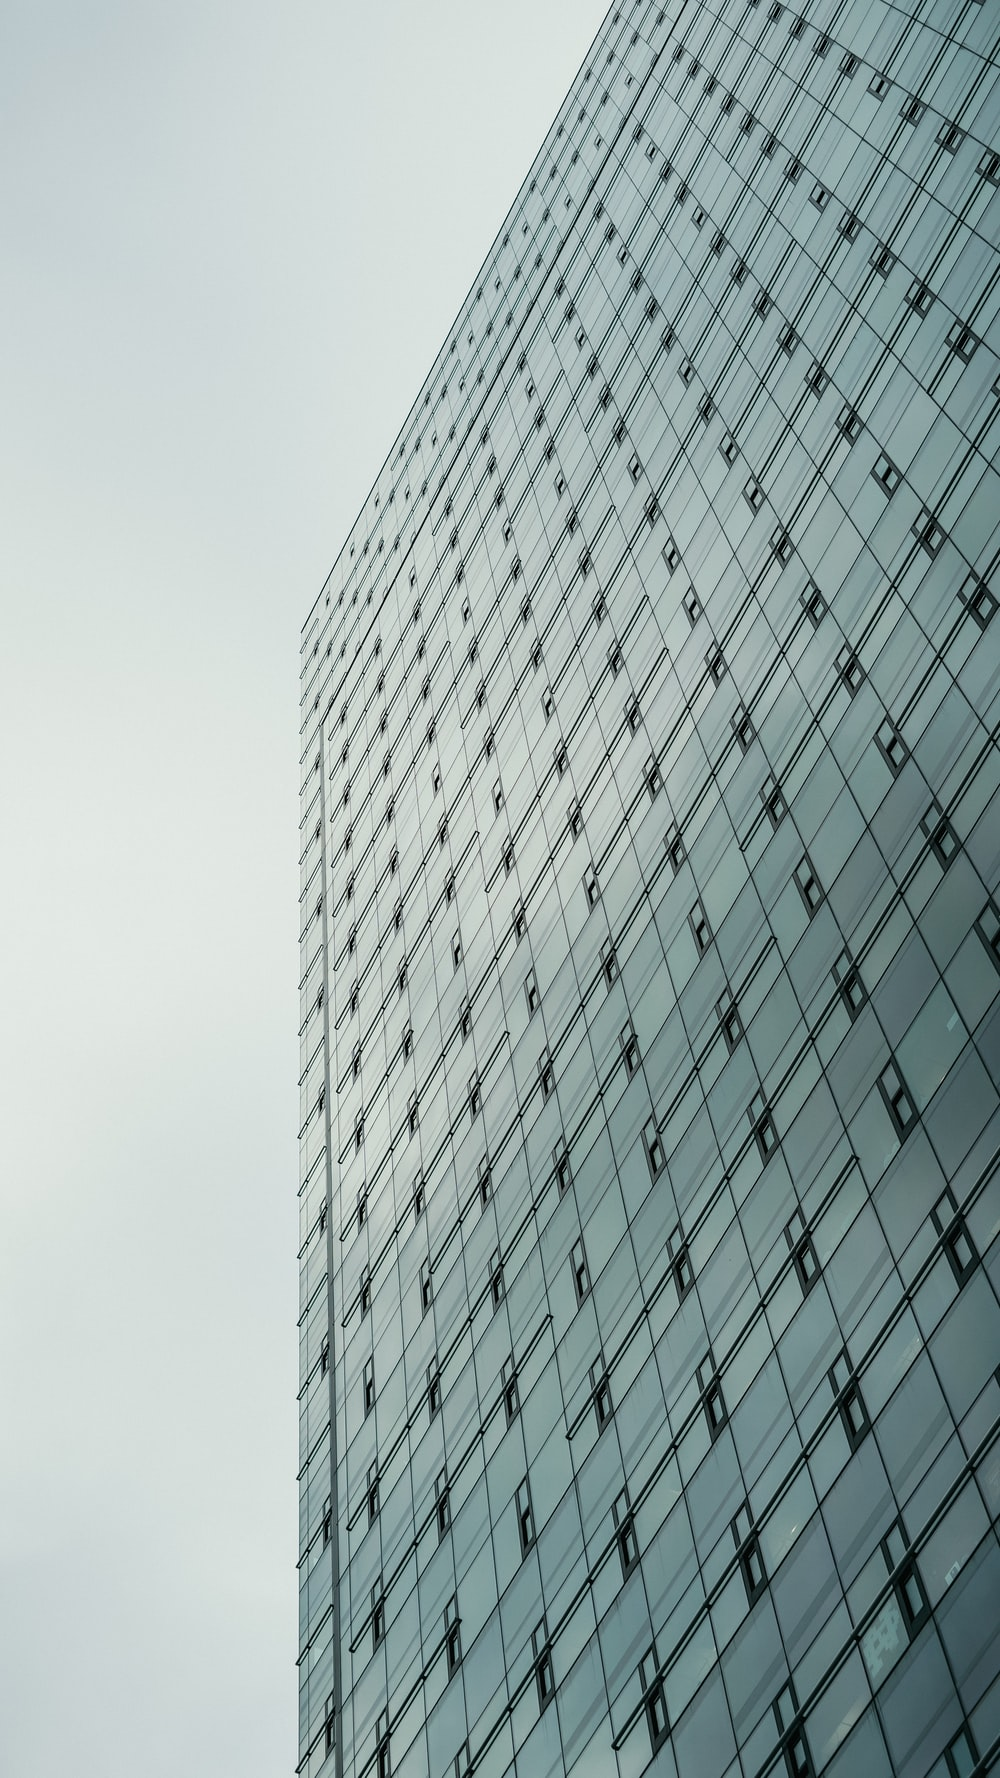 white and black glass walled high rise building